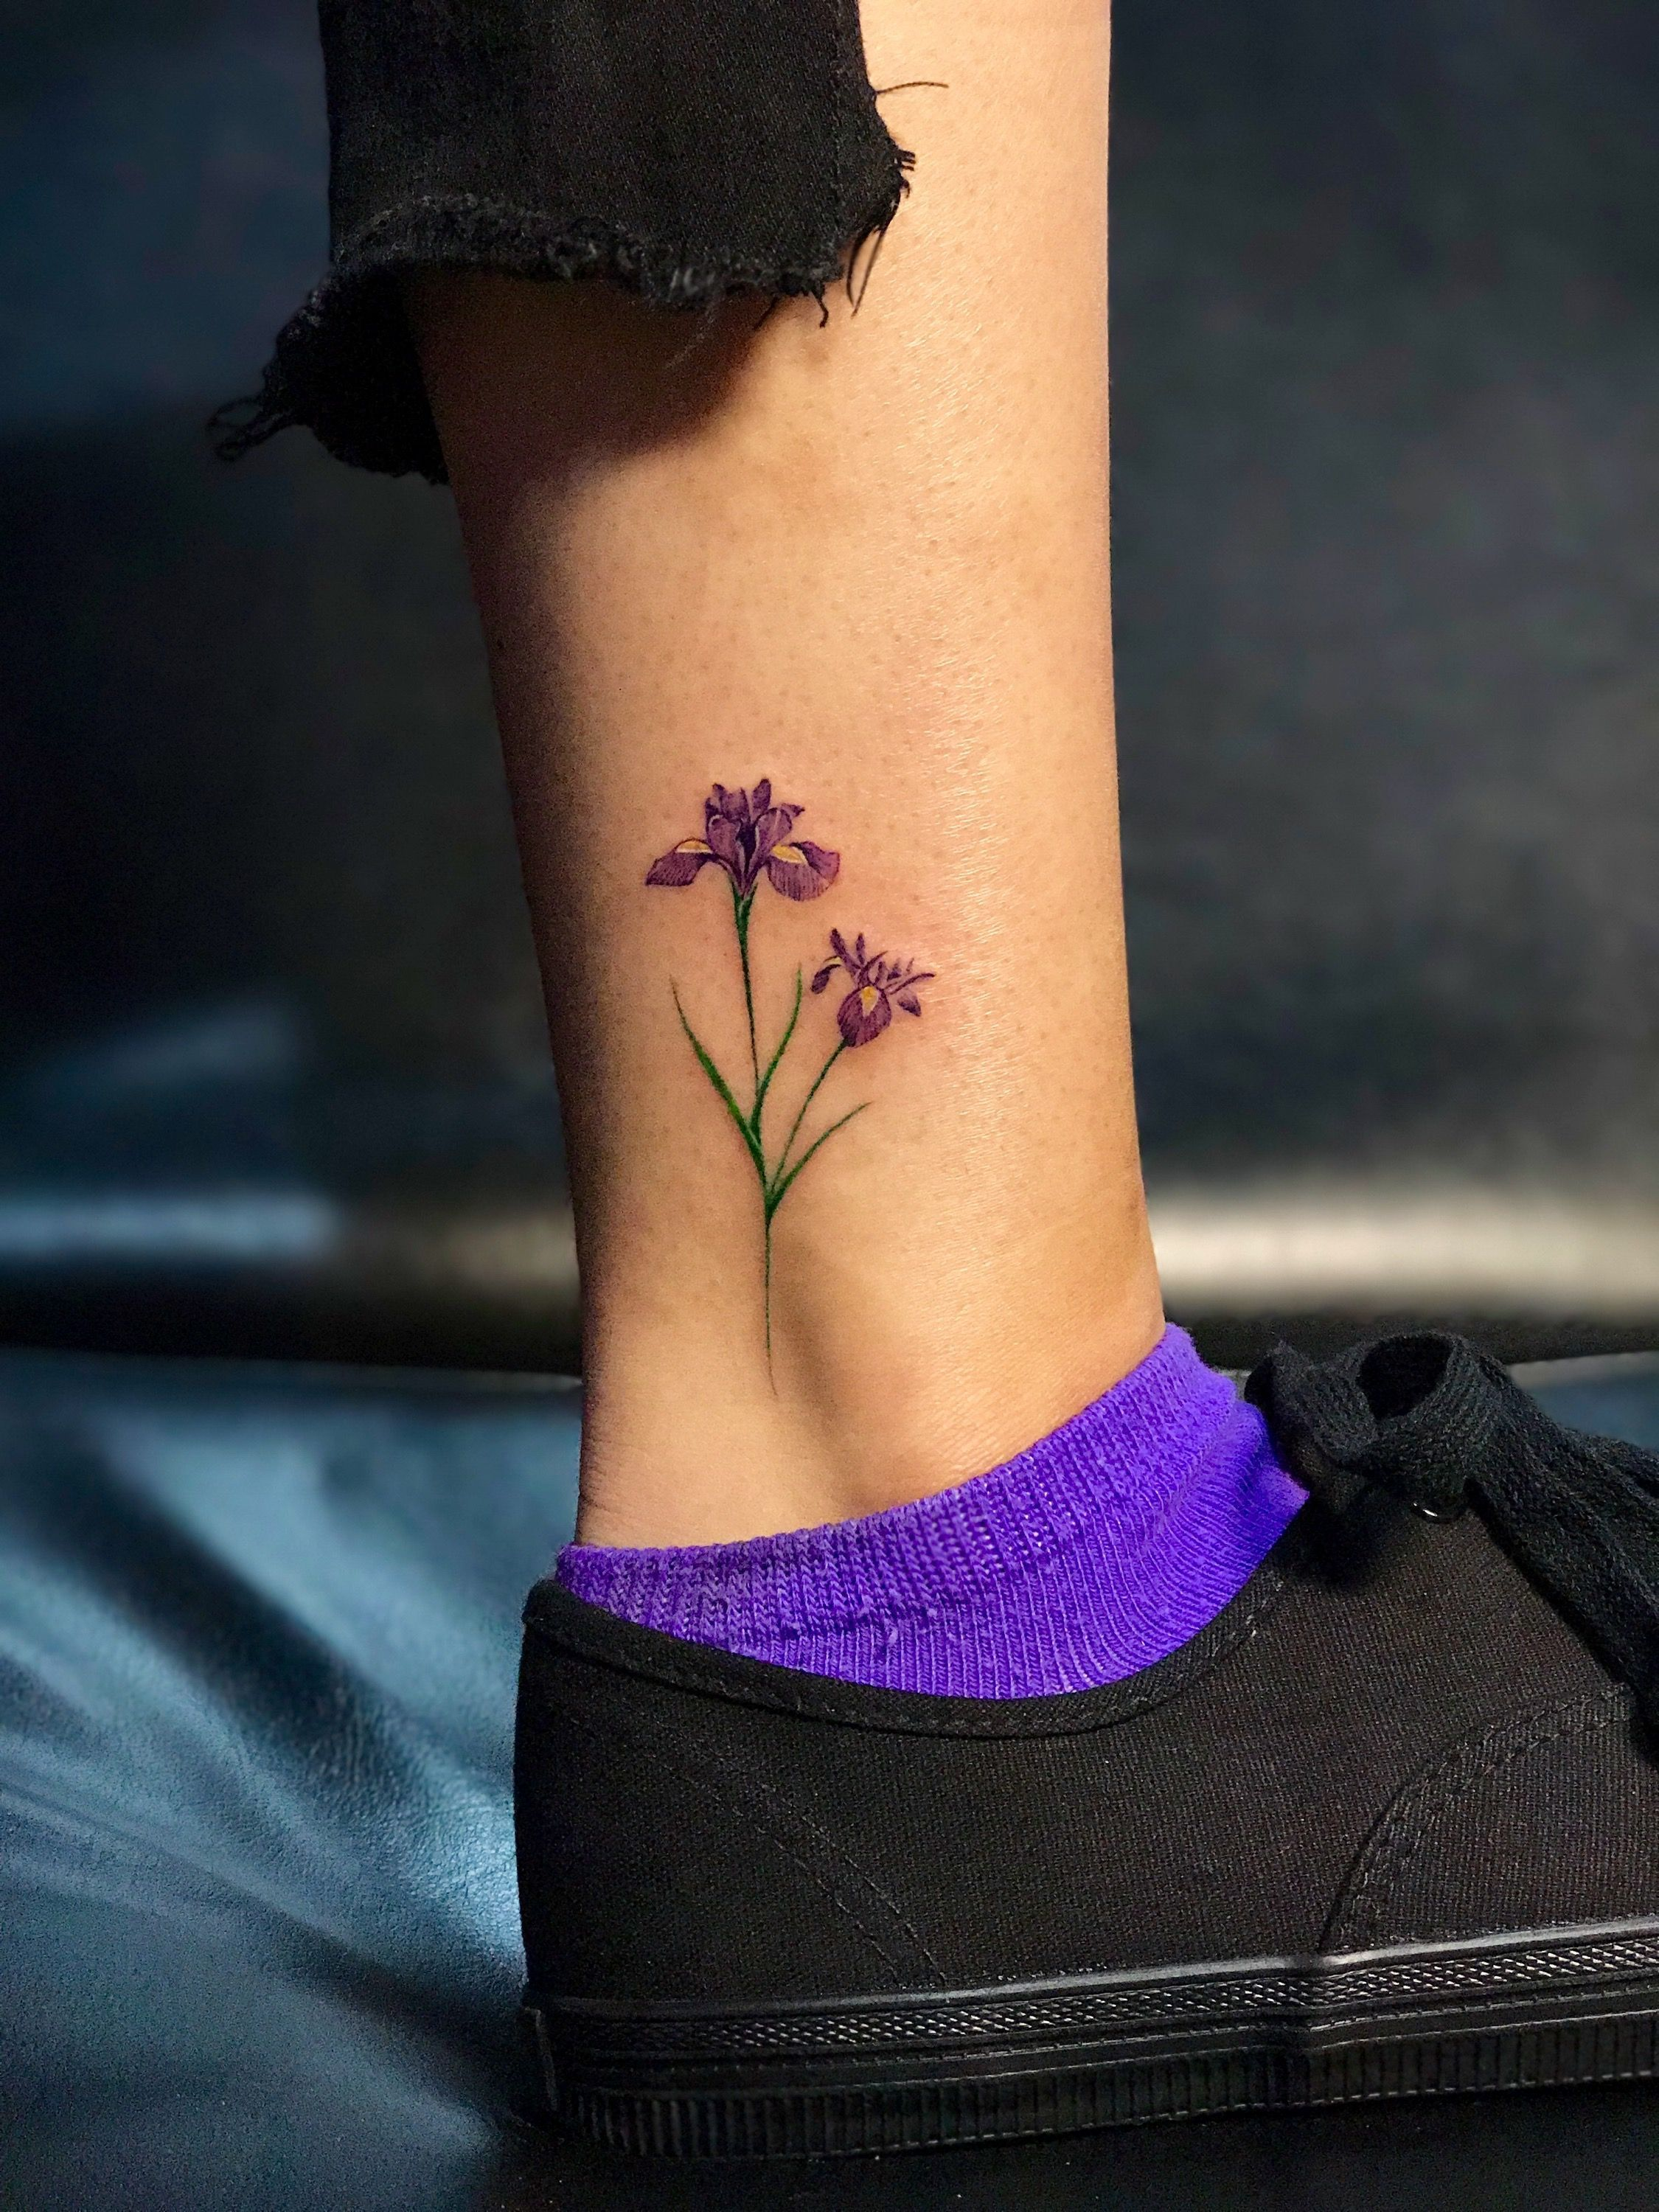 Image Result For Simple Violets And Daffodil Tattoo Ideas Iris Tattoo Violet Flower Tattoos Iris Flower Tattoo